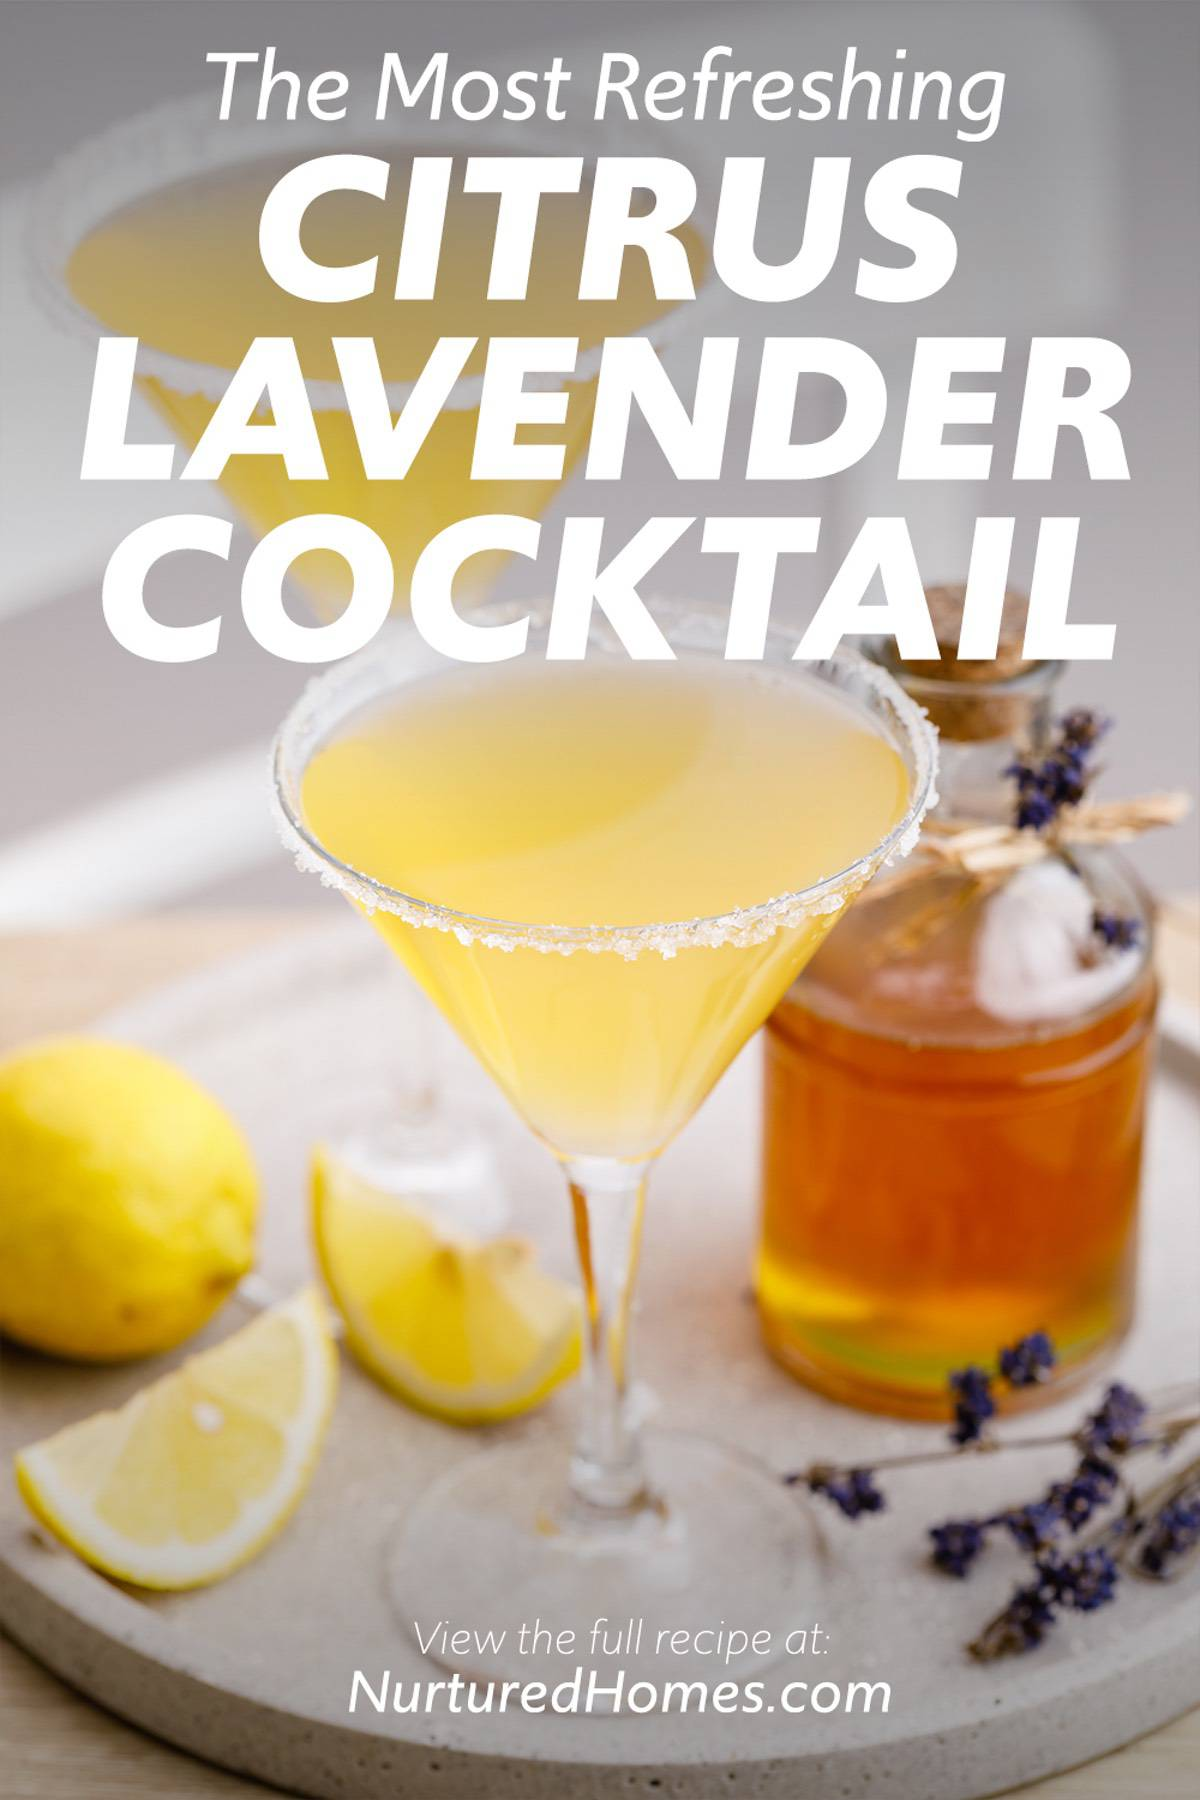 The Most Refreshing Citrus Lavender Cocktail Ever